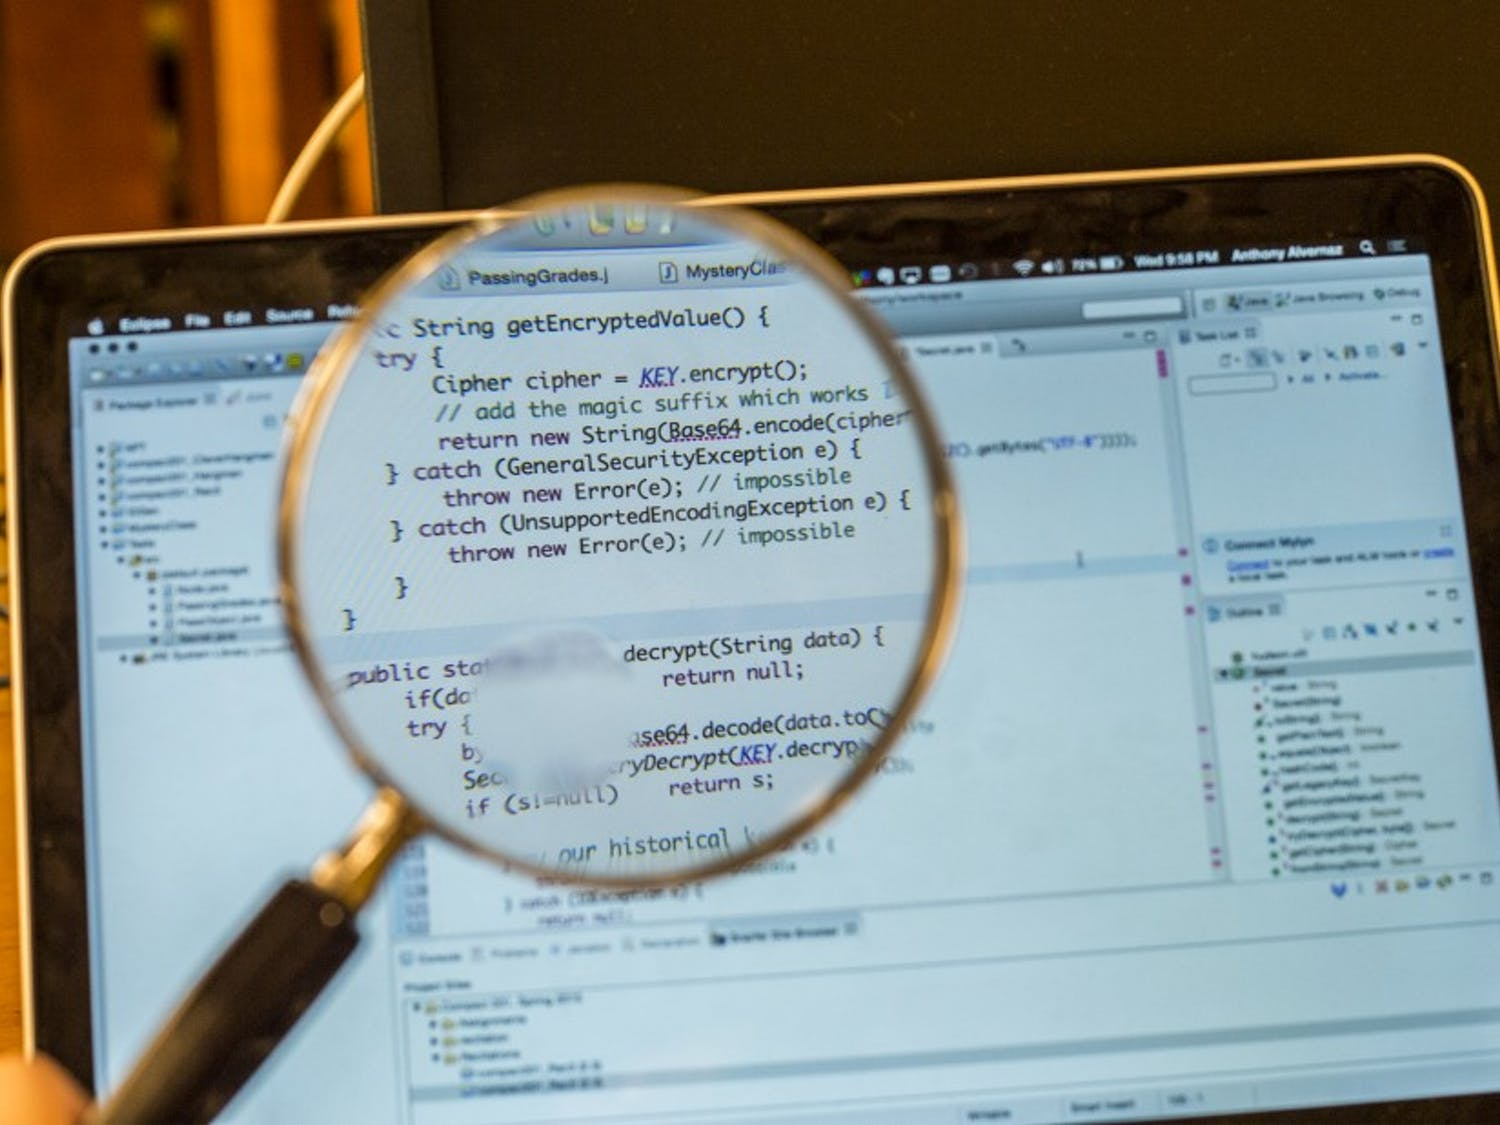 The computer science department launched an academic dishonesty investigation last Fall for students previously enrolled in CompSci 201.